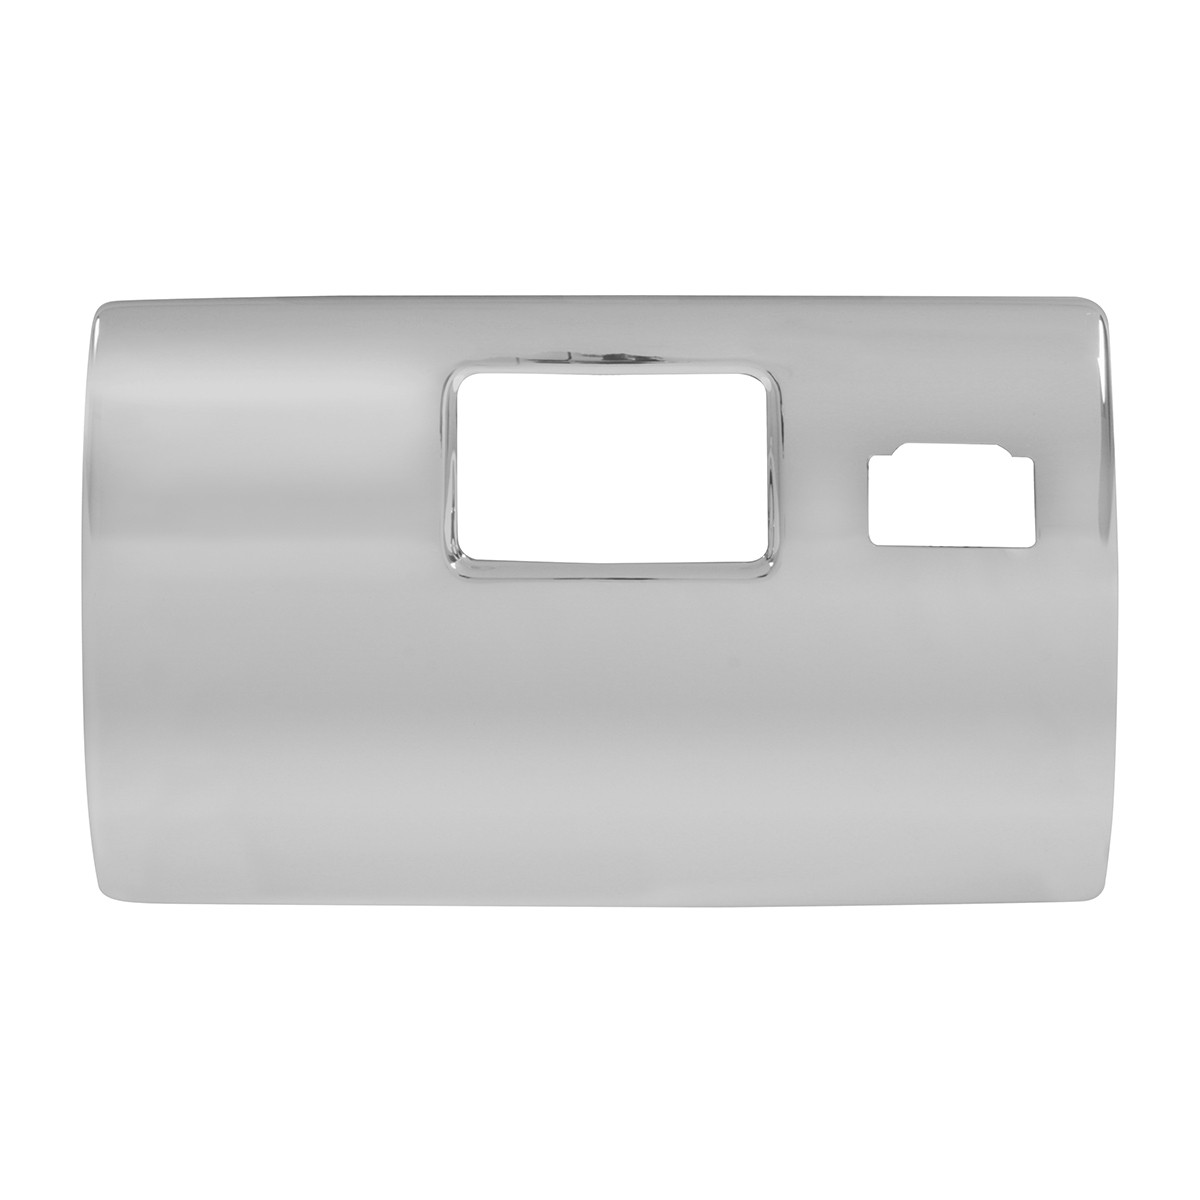 67950 Glove Box Trim w/ Emblem Hole for Peterbilt 370 Series 2000 to 2005